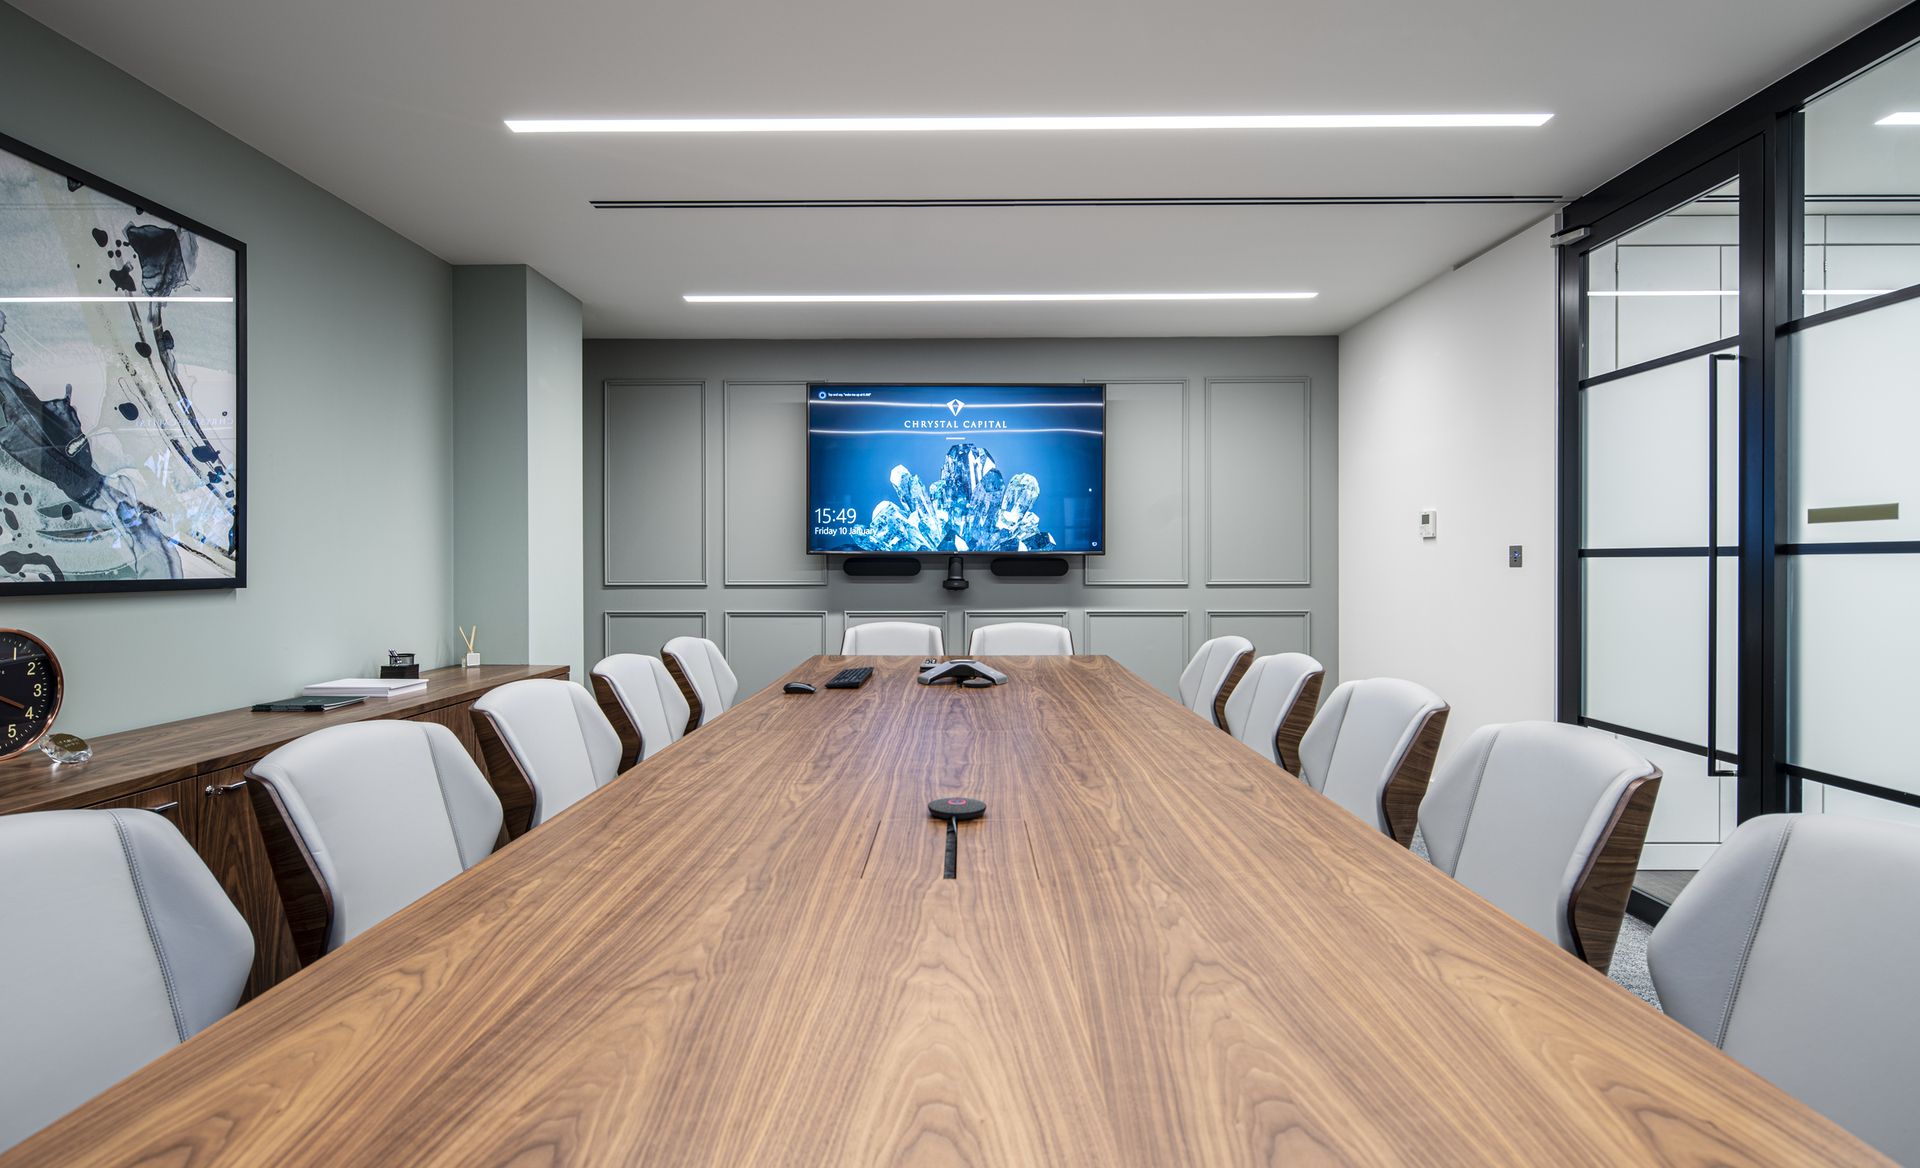 Chrystal Capital Conference Room